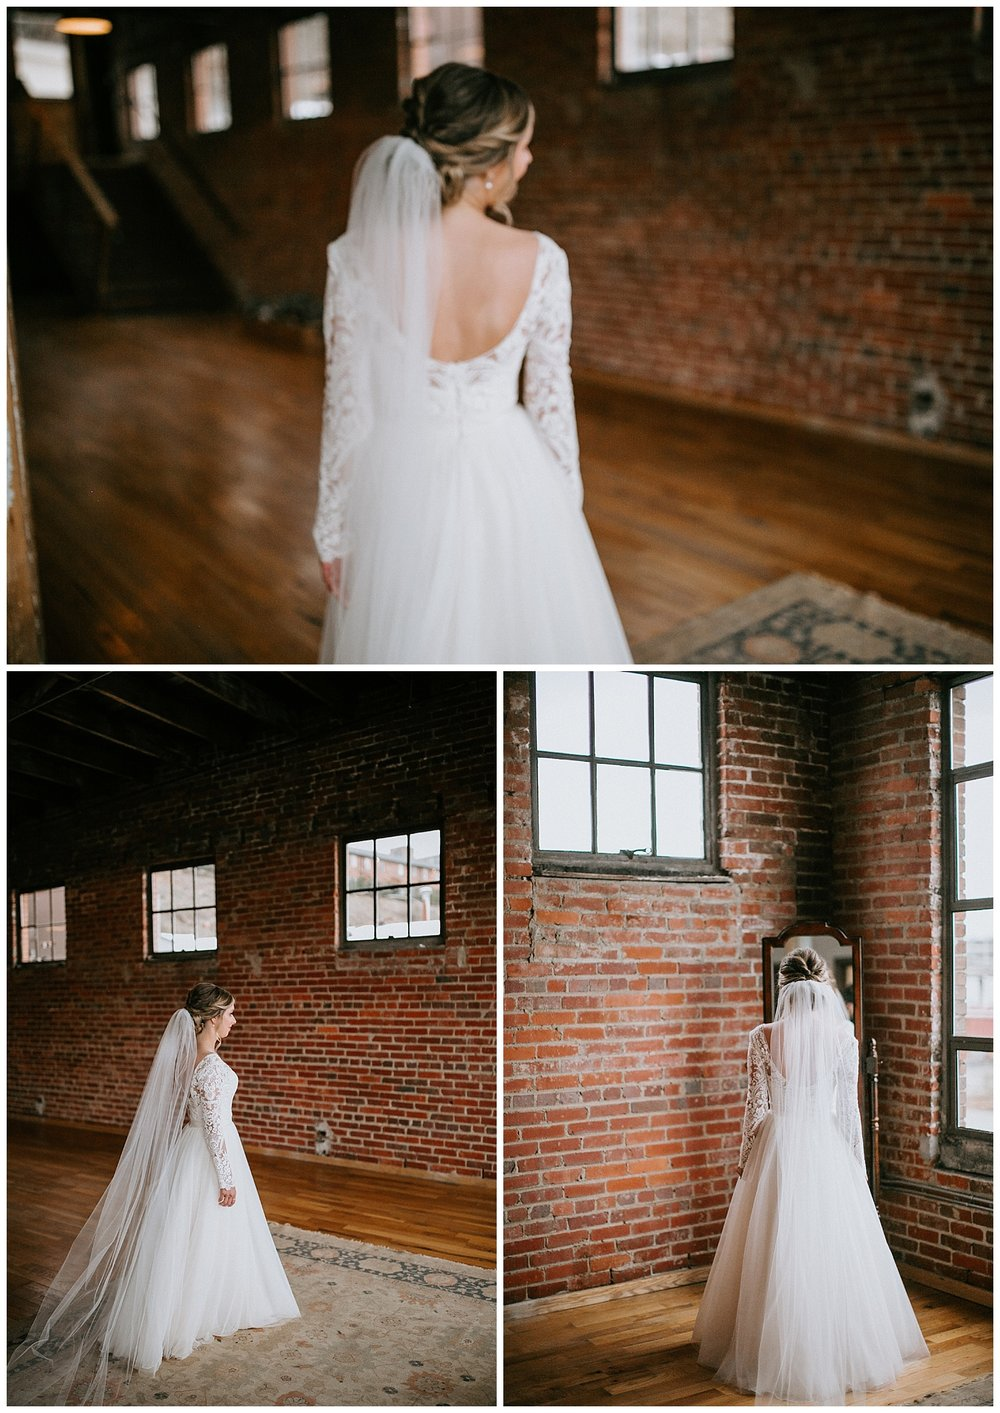 winter-wedding-the standard-knoxville_2019-01-23_0012.jpg